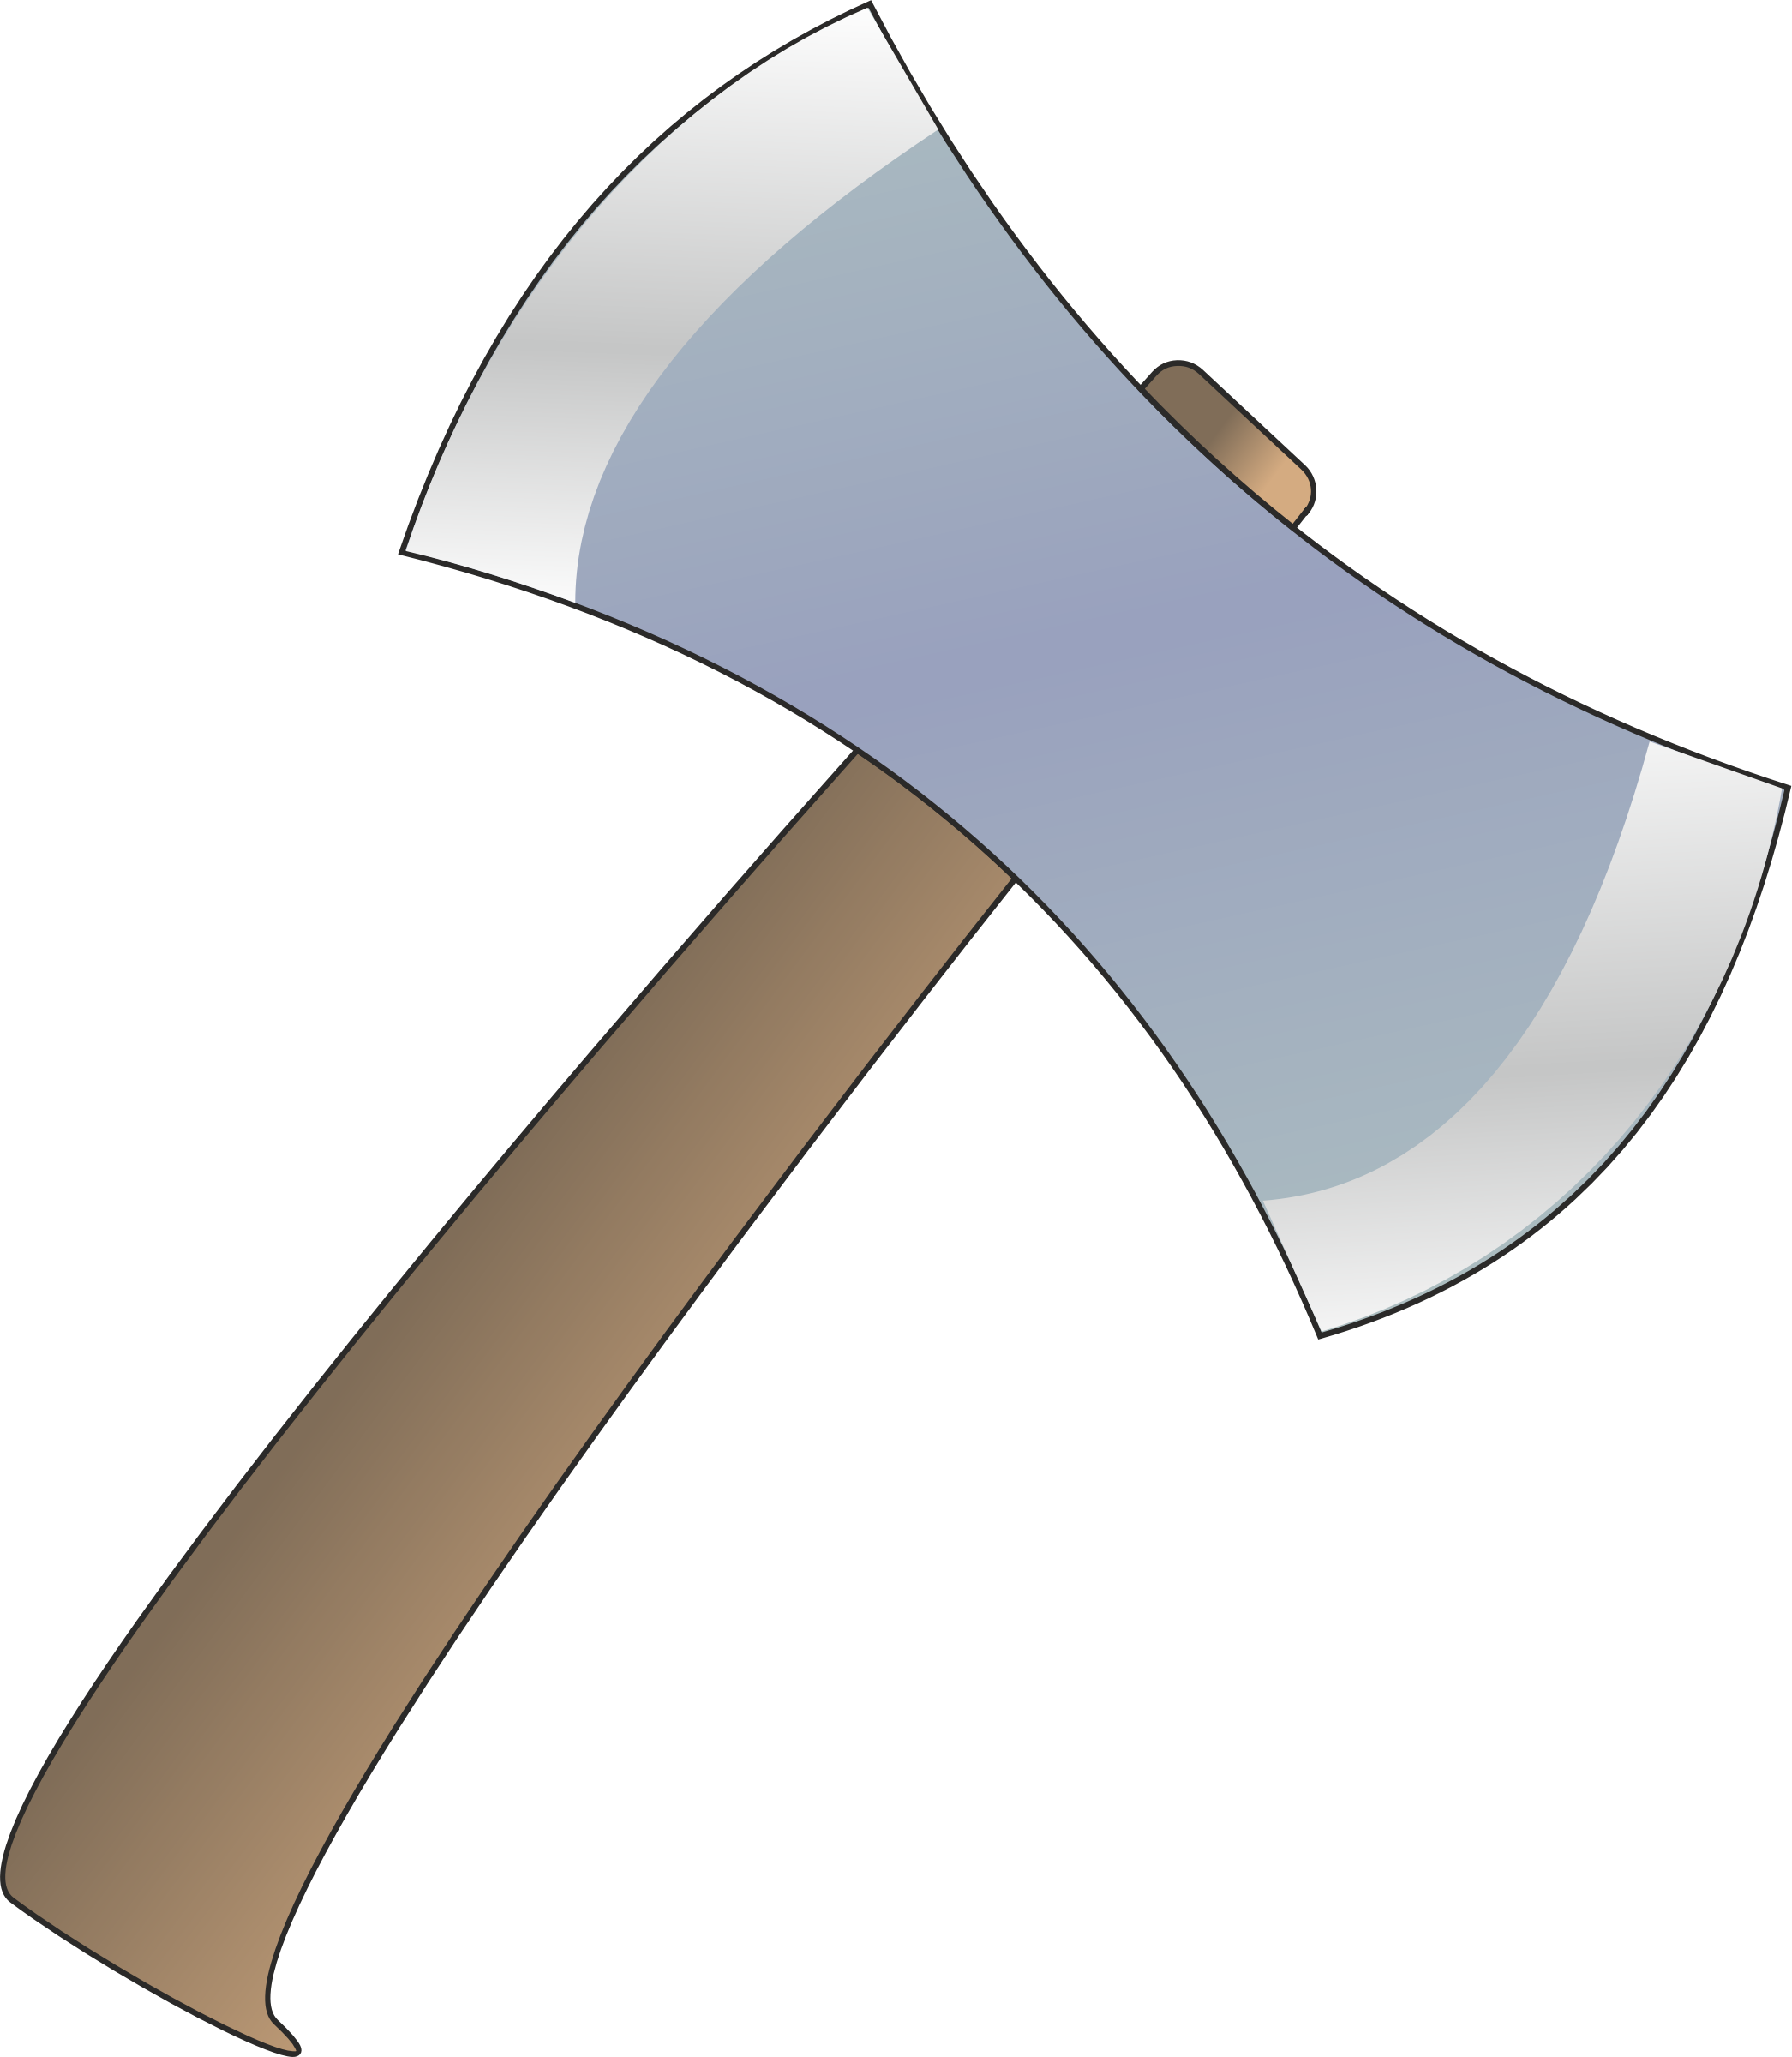 Big image png. Axe clipart